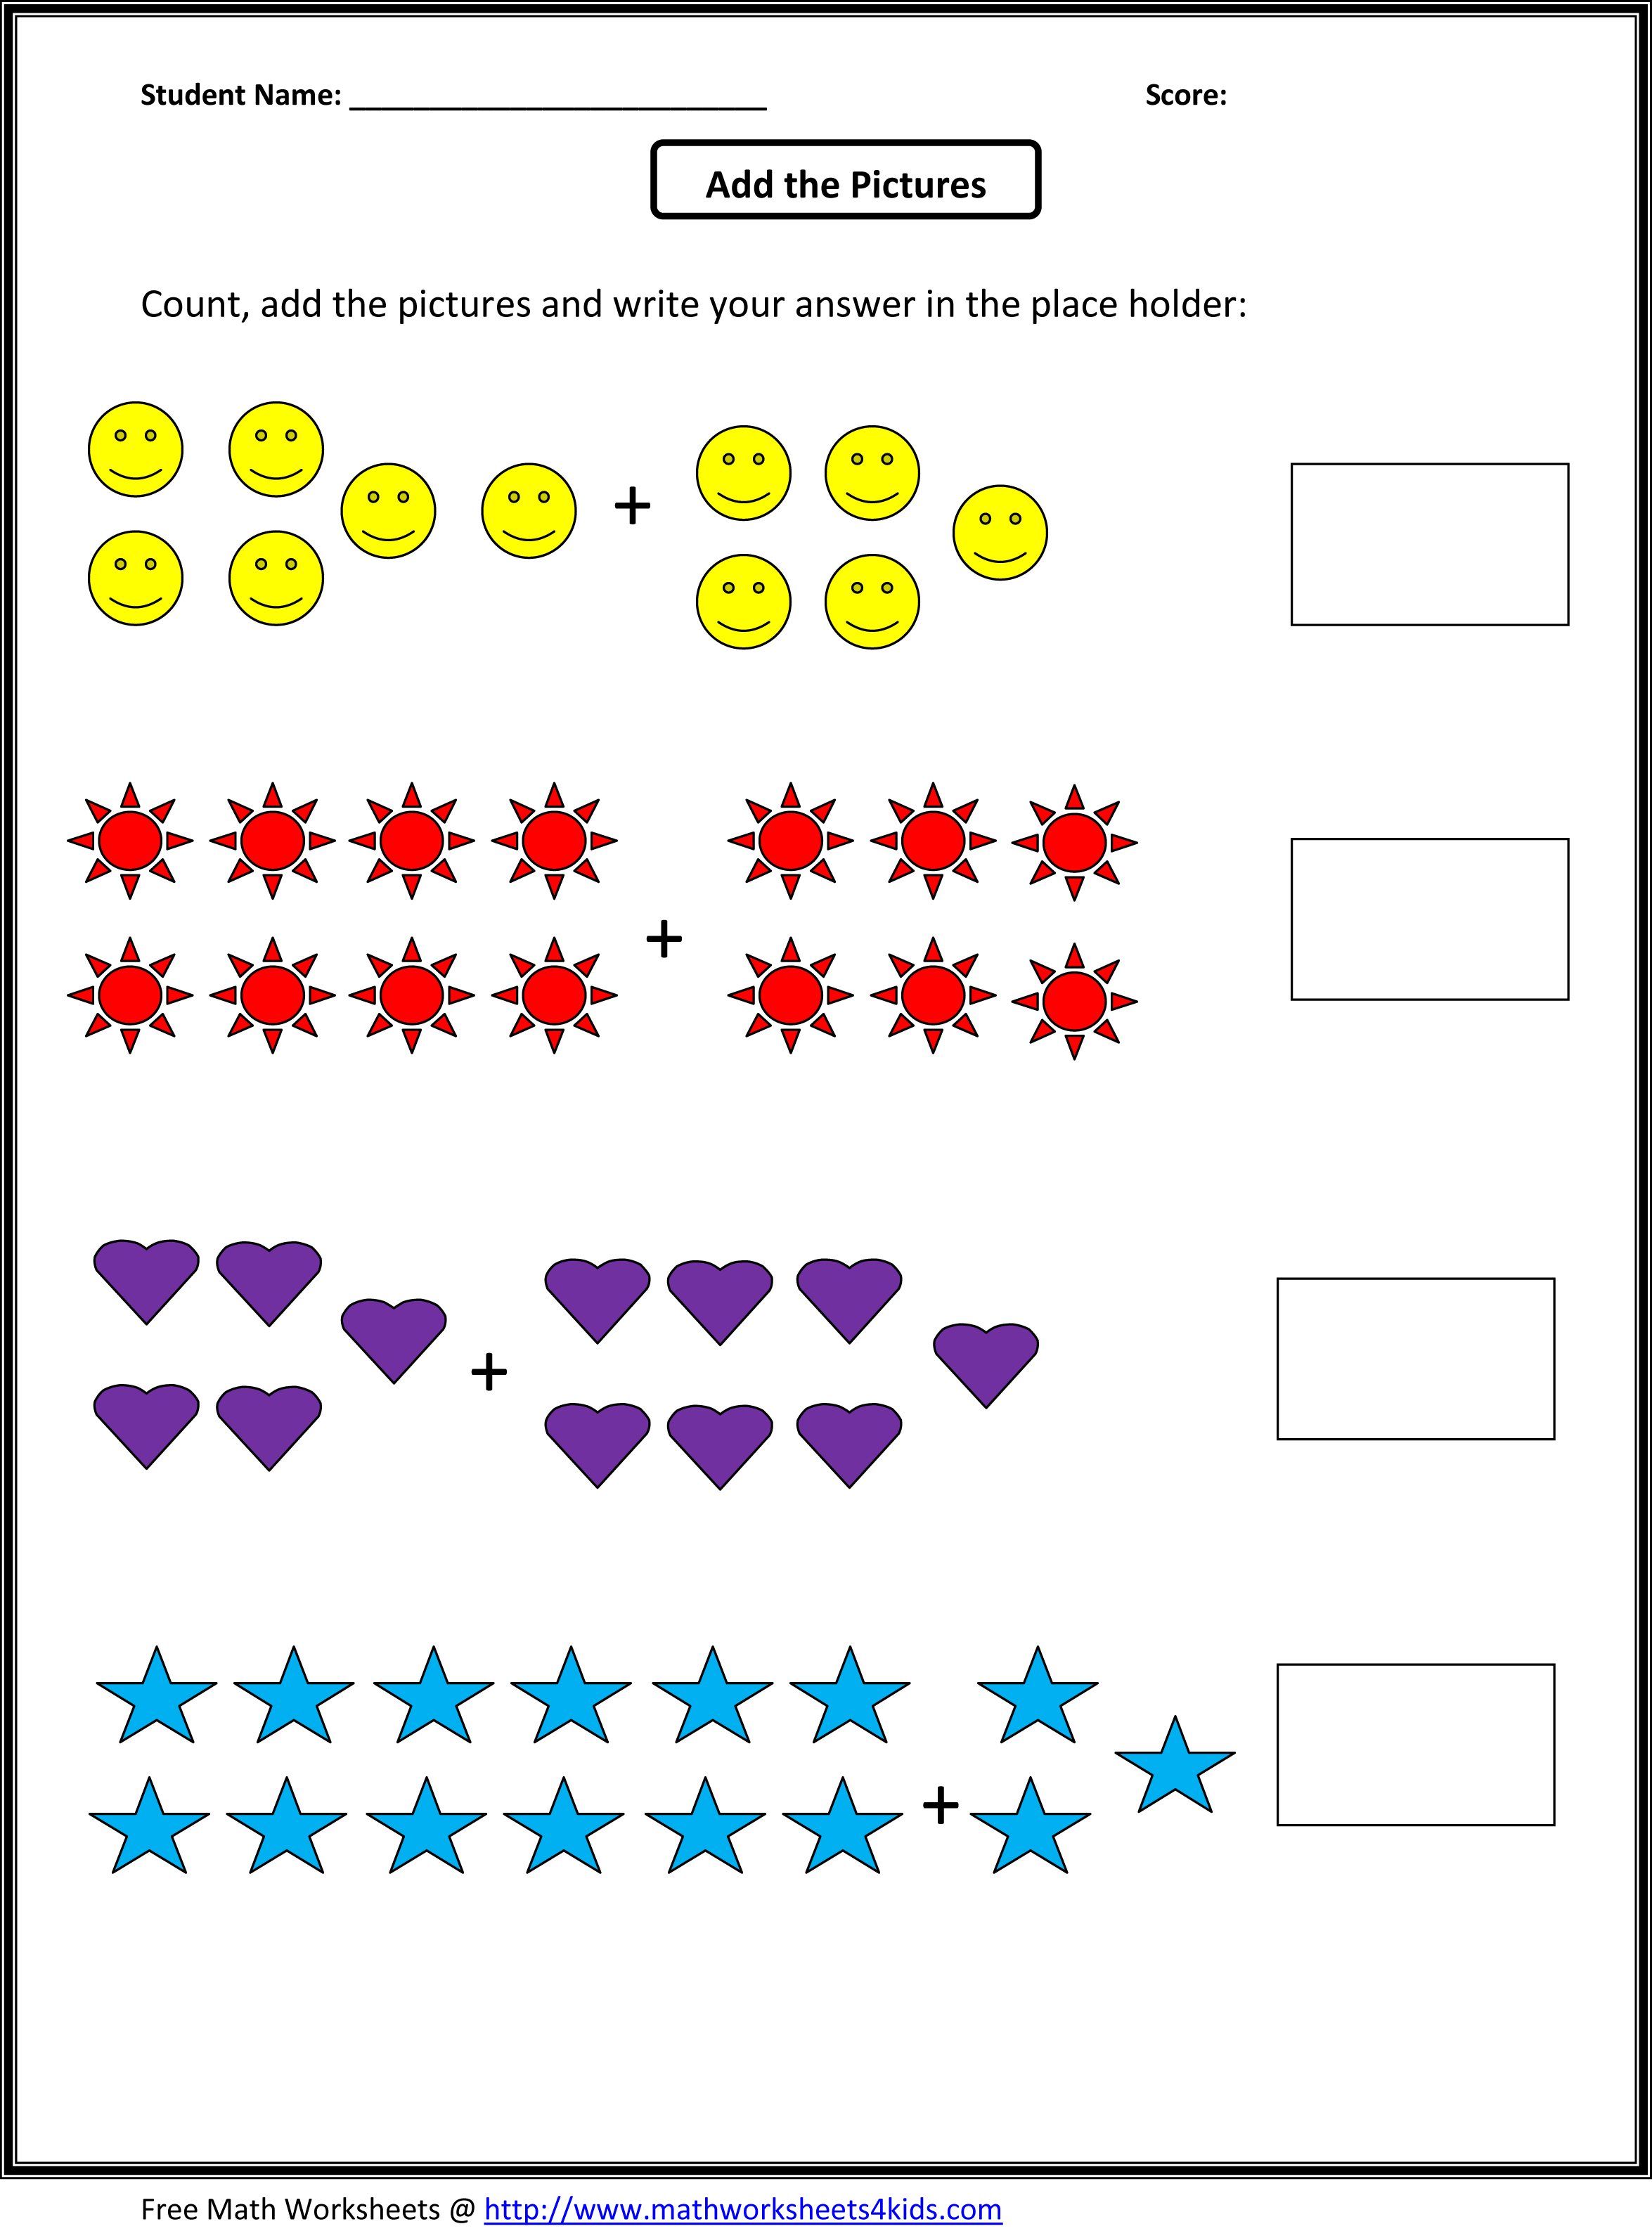 Proatmealus  Surprising Grade  Maths Worksheet  Reocurent With Licious Math Worksheets For St Grade Free  Reocurent With Awesome Blank Map Of Africa Worksheet Also Angles Triangles Worksheet In Addition Henny Penny Worksheets And Word Play Worksheets As Well As Easter Story Worksheet Additionally Worksheet Punctuation From Reocurentcom With Proatmealus  Licious Grade  Maths Worksheet  Reocurent With Awesome Math Worksheets For St Grade Free  Reocurent And Surprising Blank Map Of Africa Worksheet Also Angles Triangles Worksheet In Addition Henny Penny Worksheets From Reocurentcom